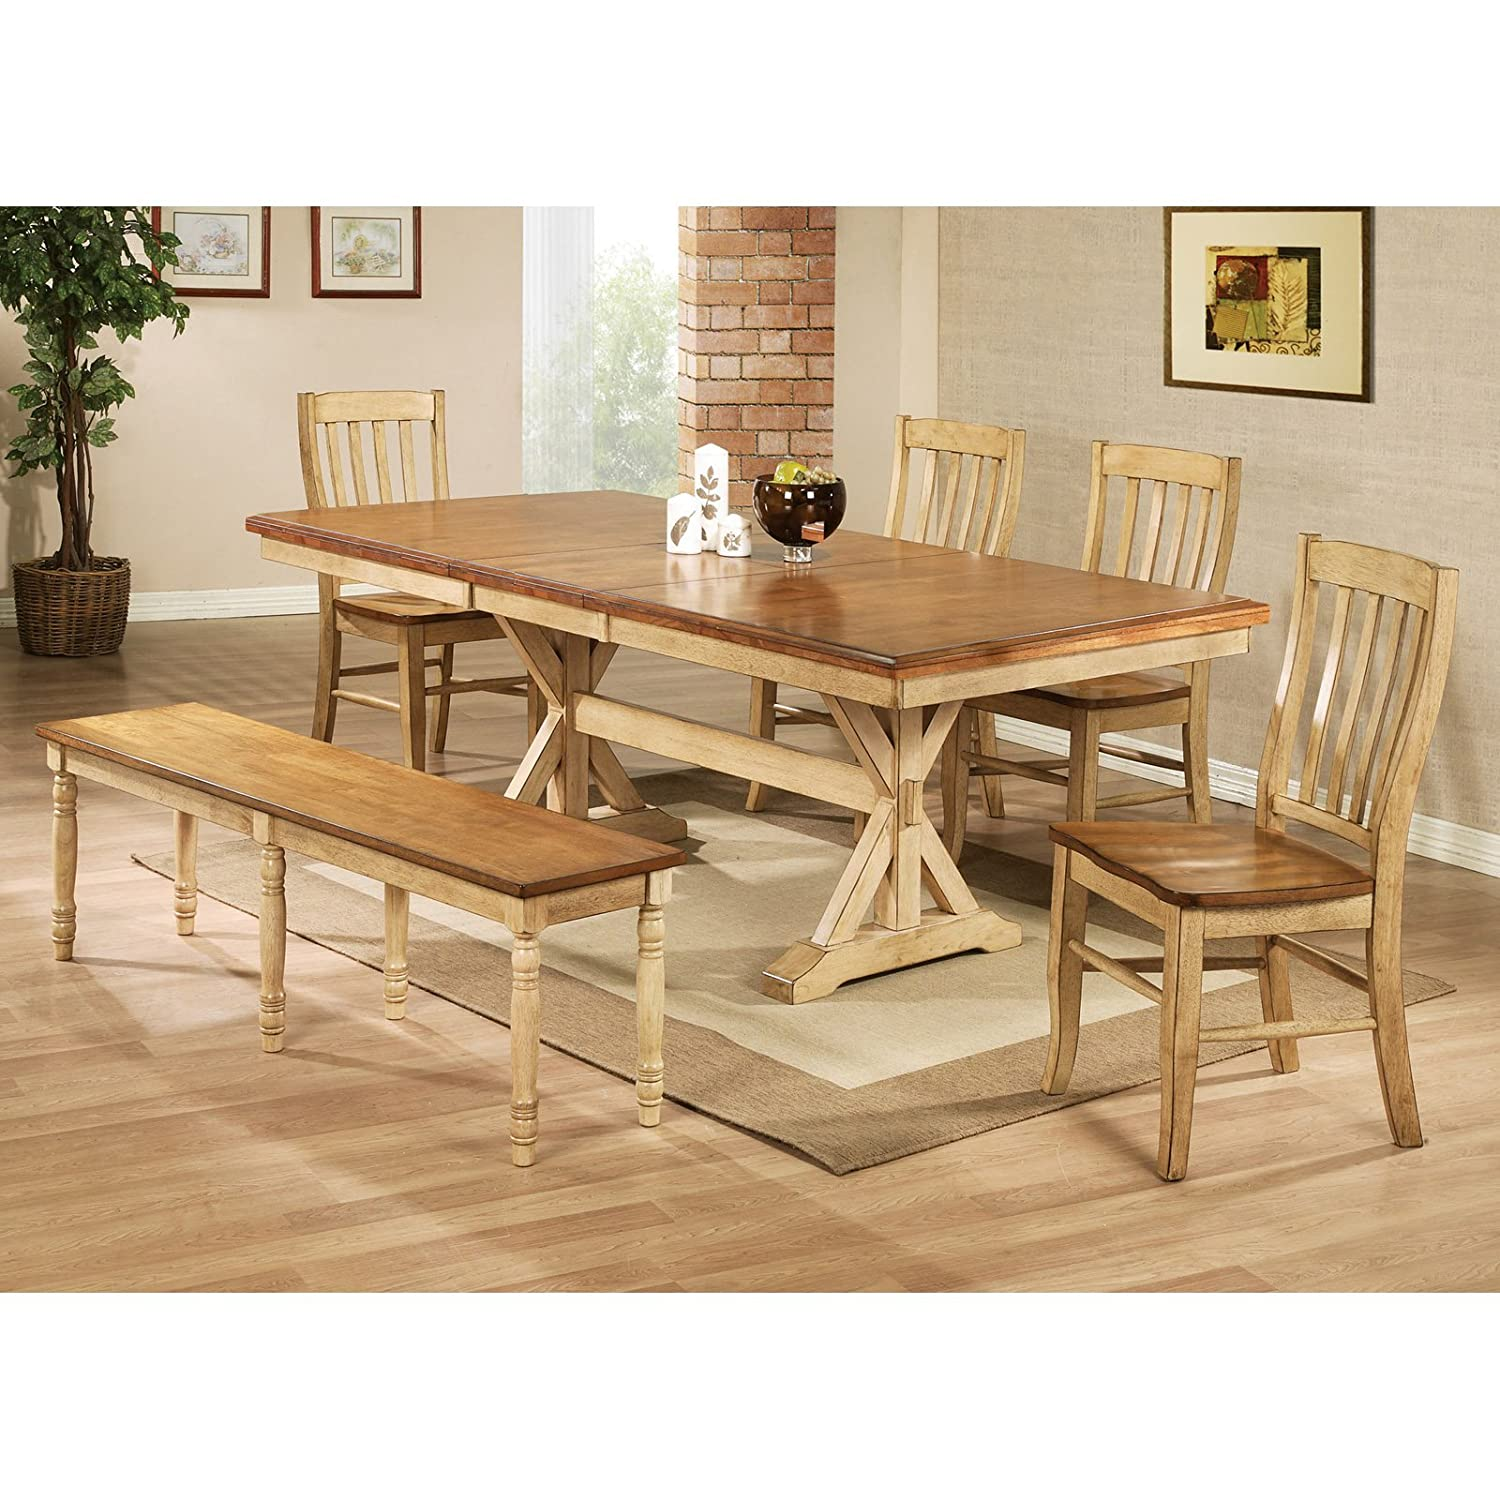 Attractive Amazon.com   Winners Only Quails Run 84 In. Trestle Dining Table With 18  In. Butterfly Leaf   Tables